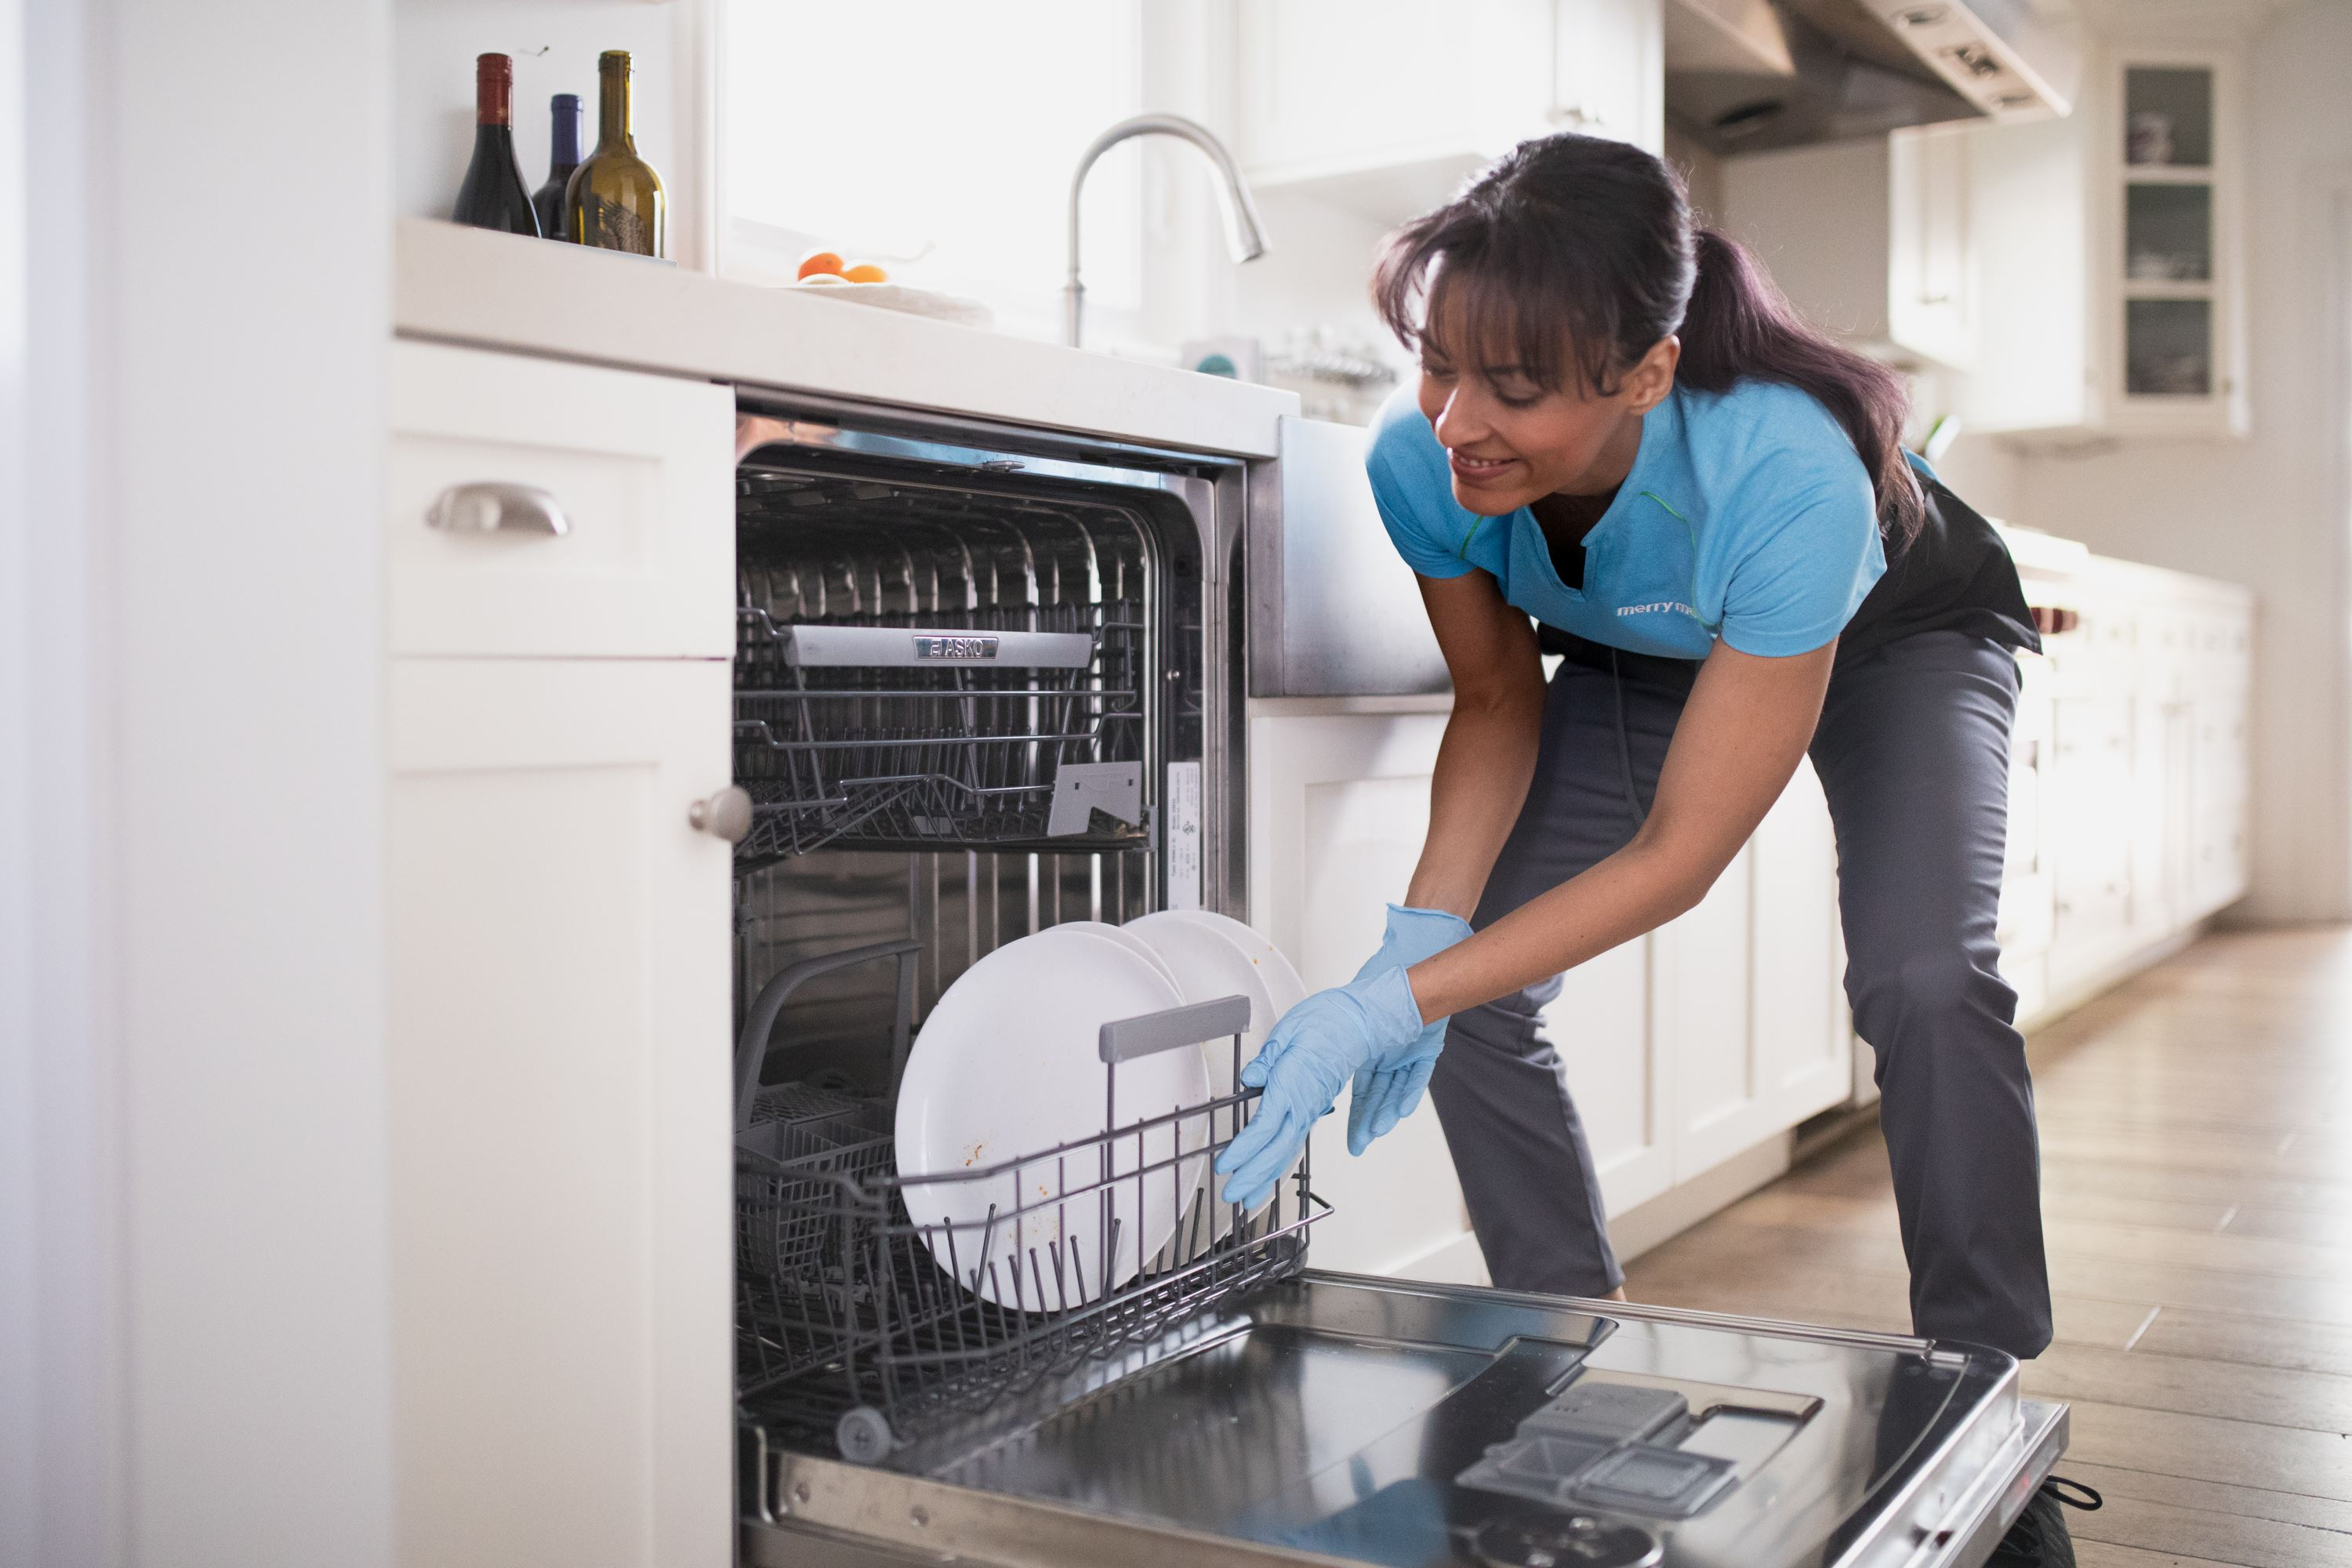 Merry Maids team member loading a dishwasher